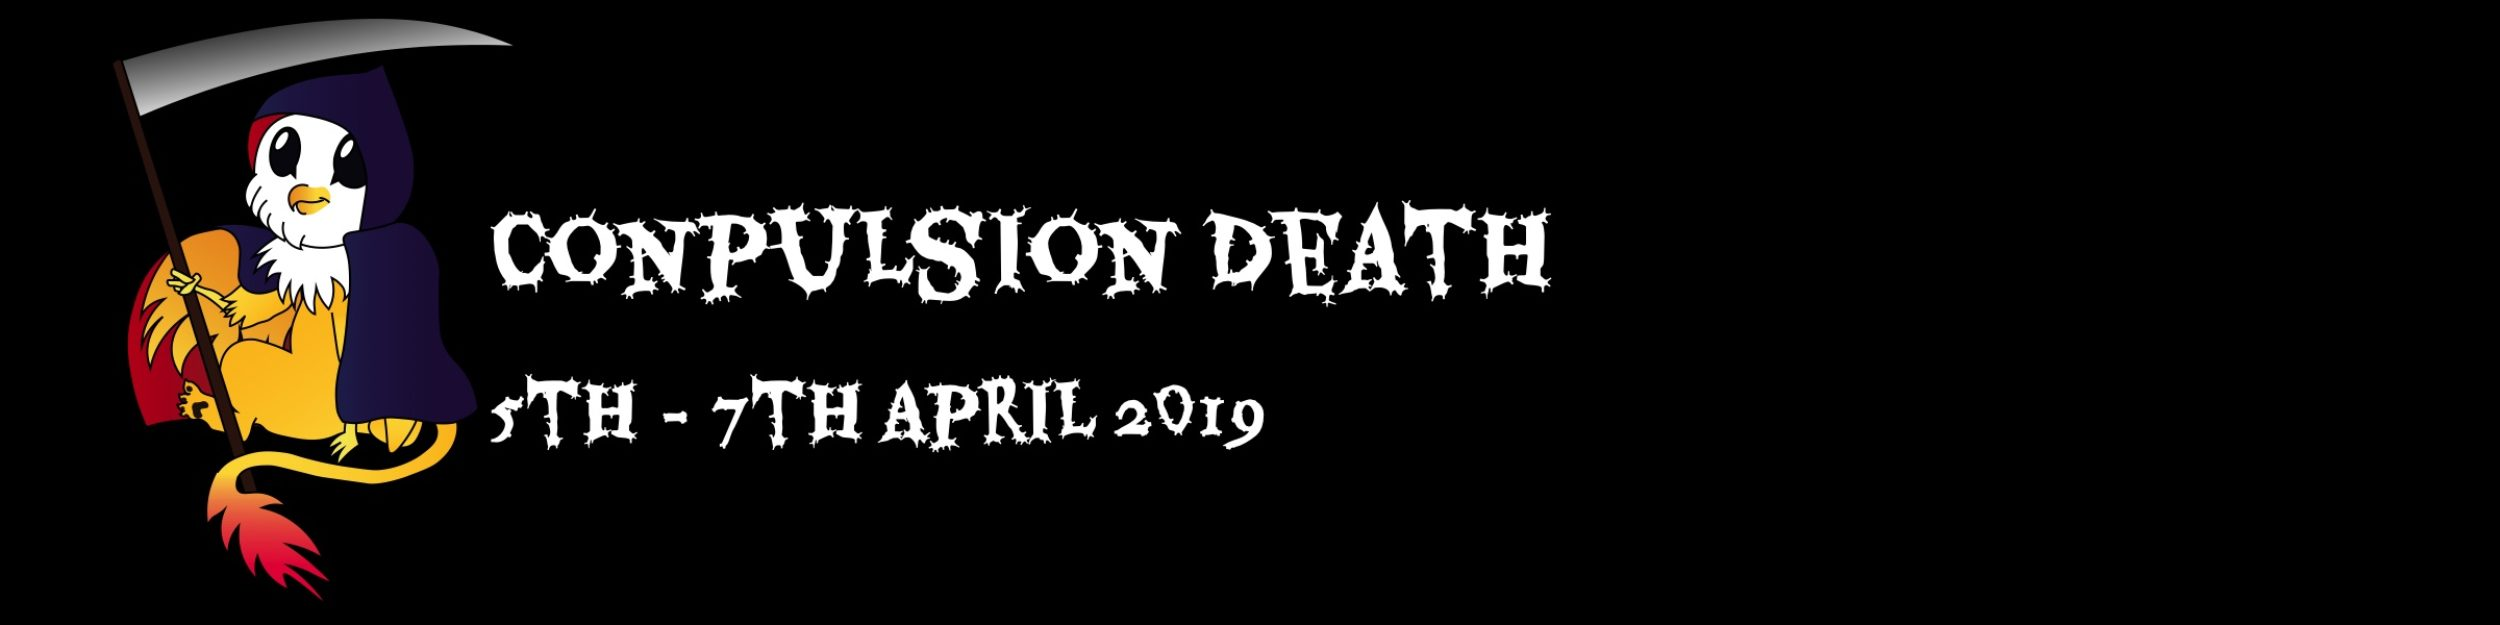 Conpulsion Death